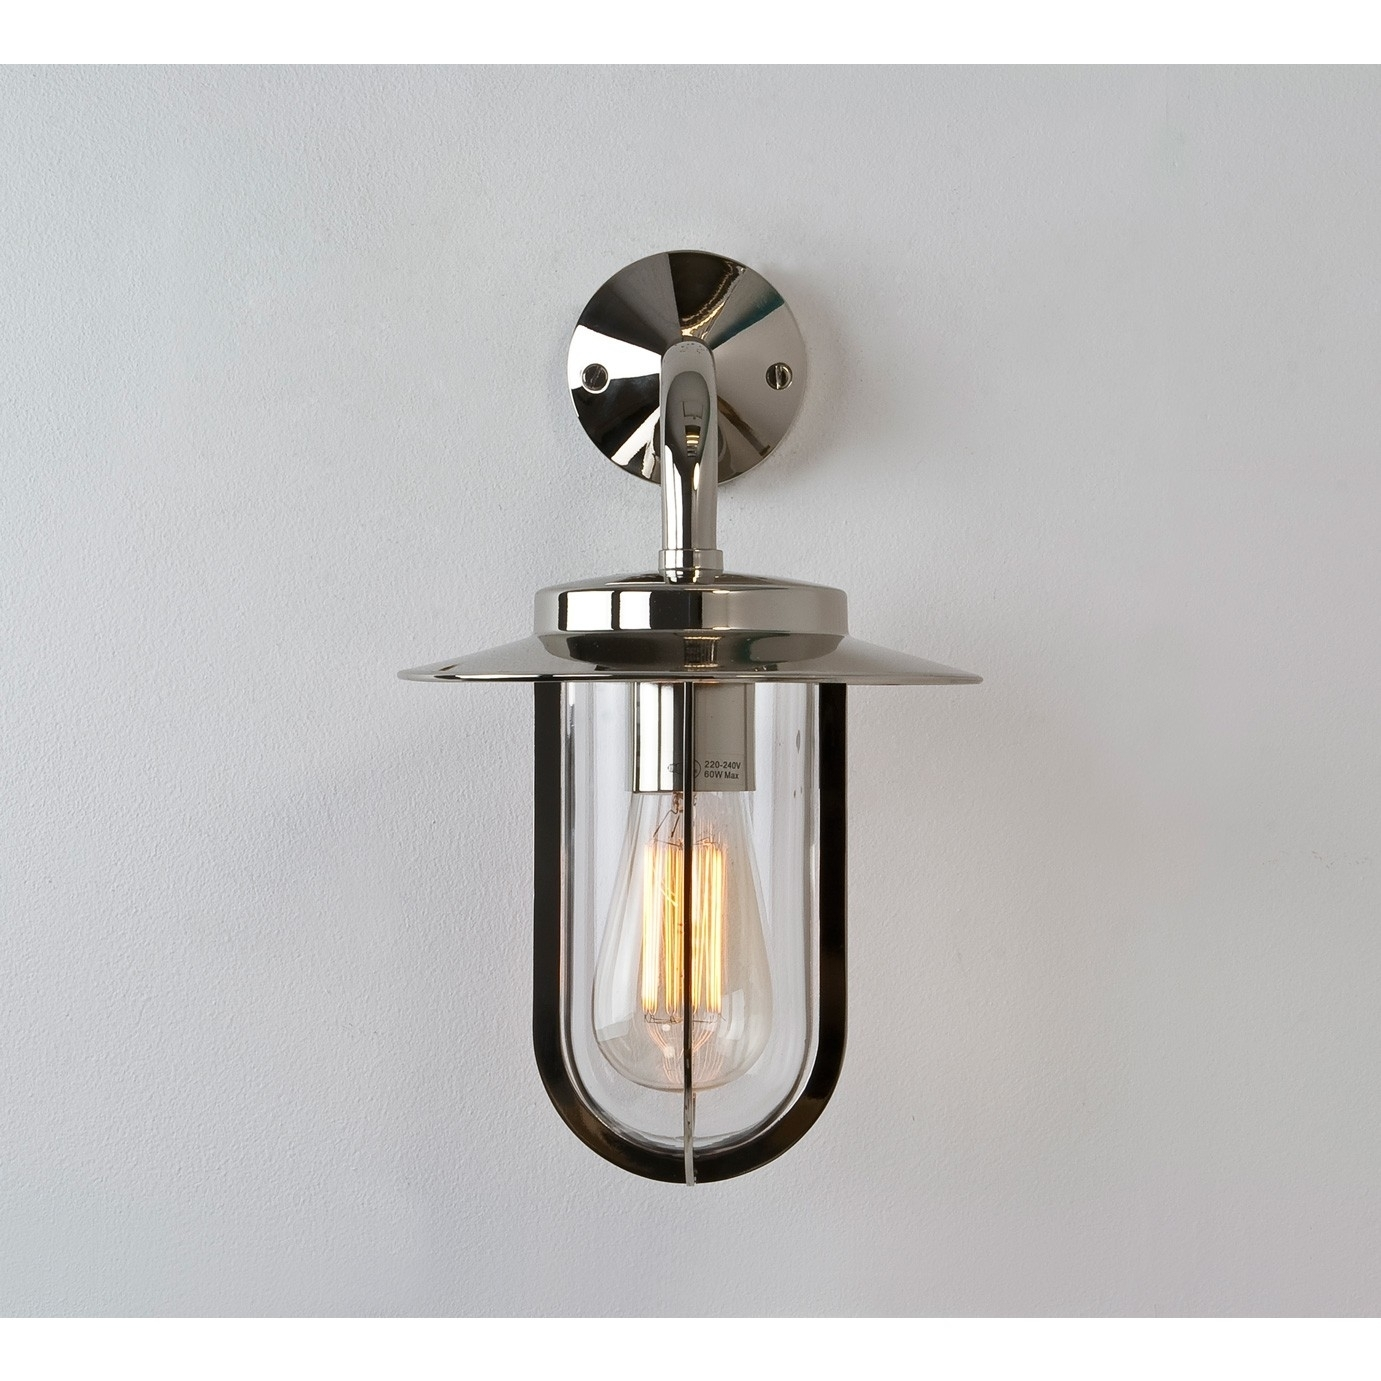 Inspiration about Polished Nickel Outdoor Wall Sconce • Wall Sconces With Nickel Polished Outdoor Wall Lighting (#9 of 15)